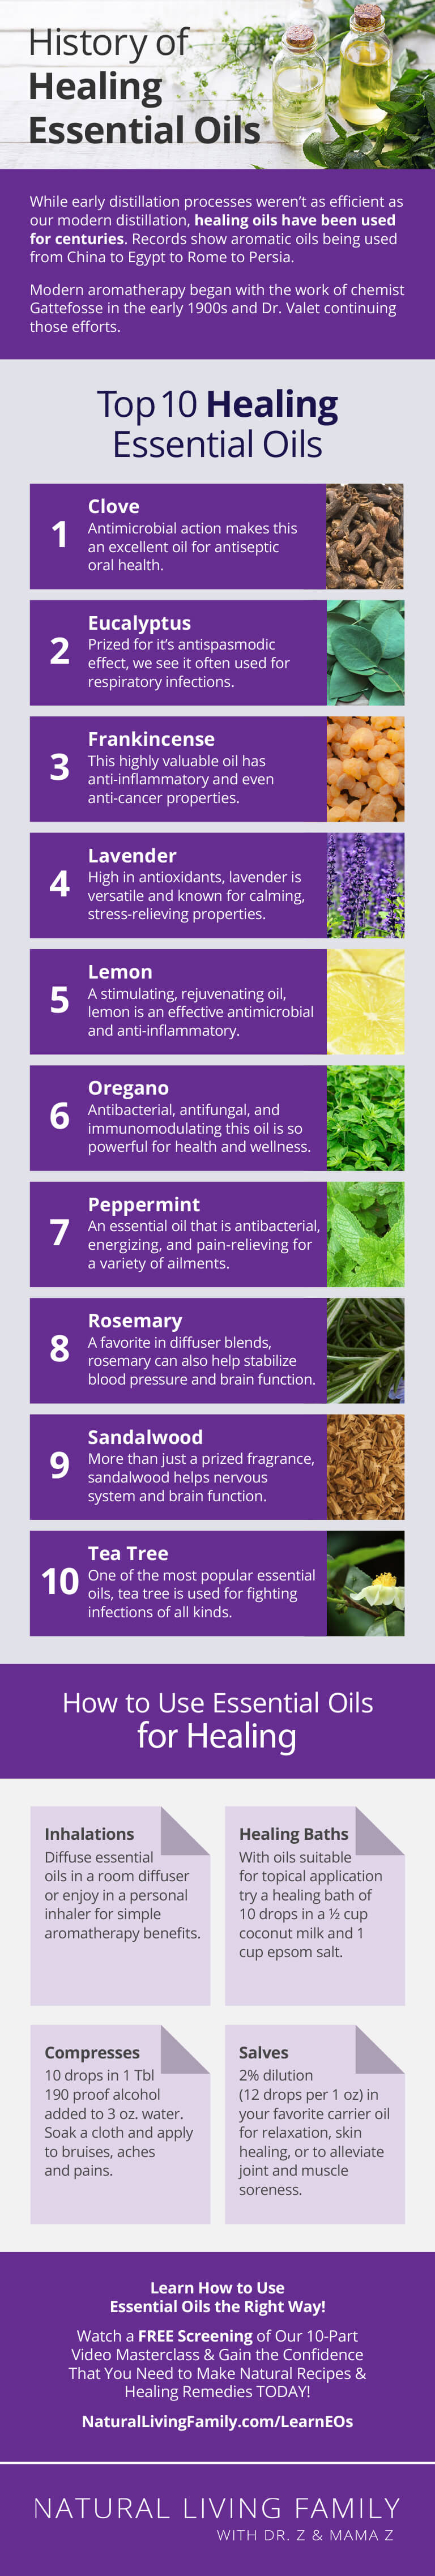 10 Best Essential Oils for Healing and How to Use Them!